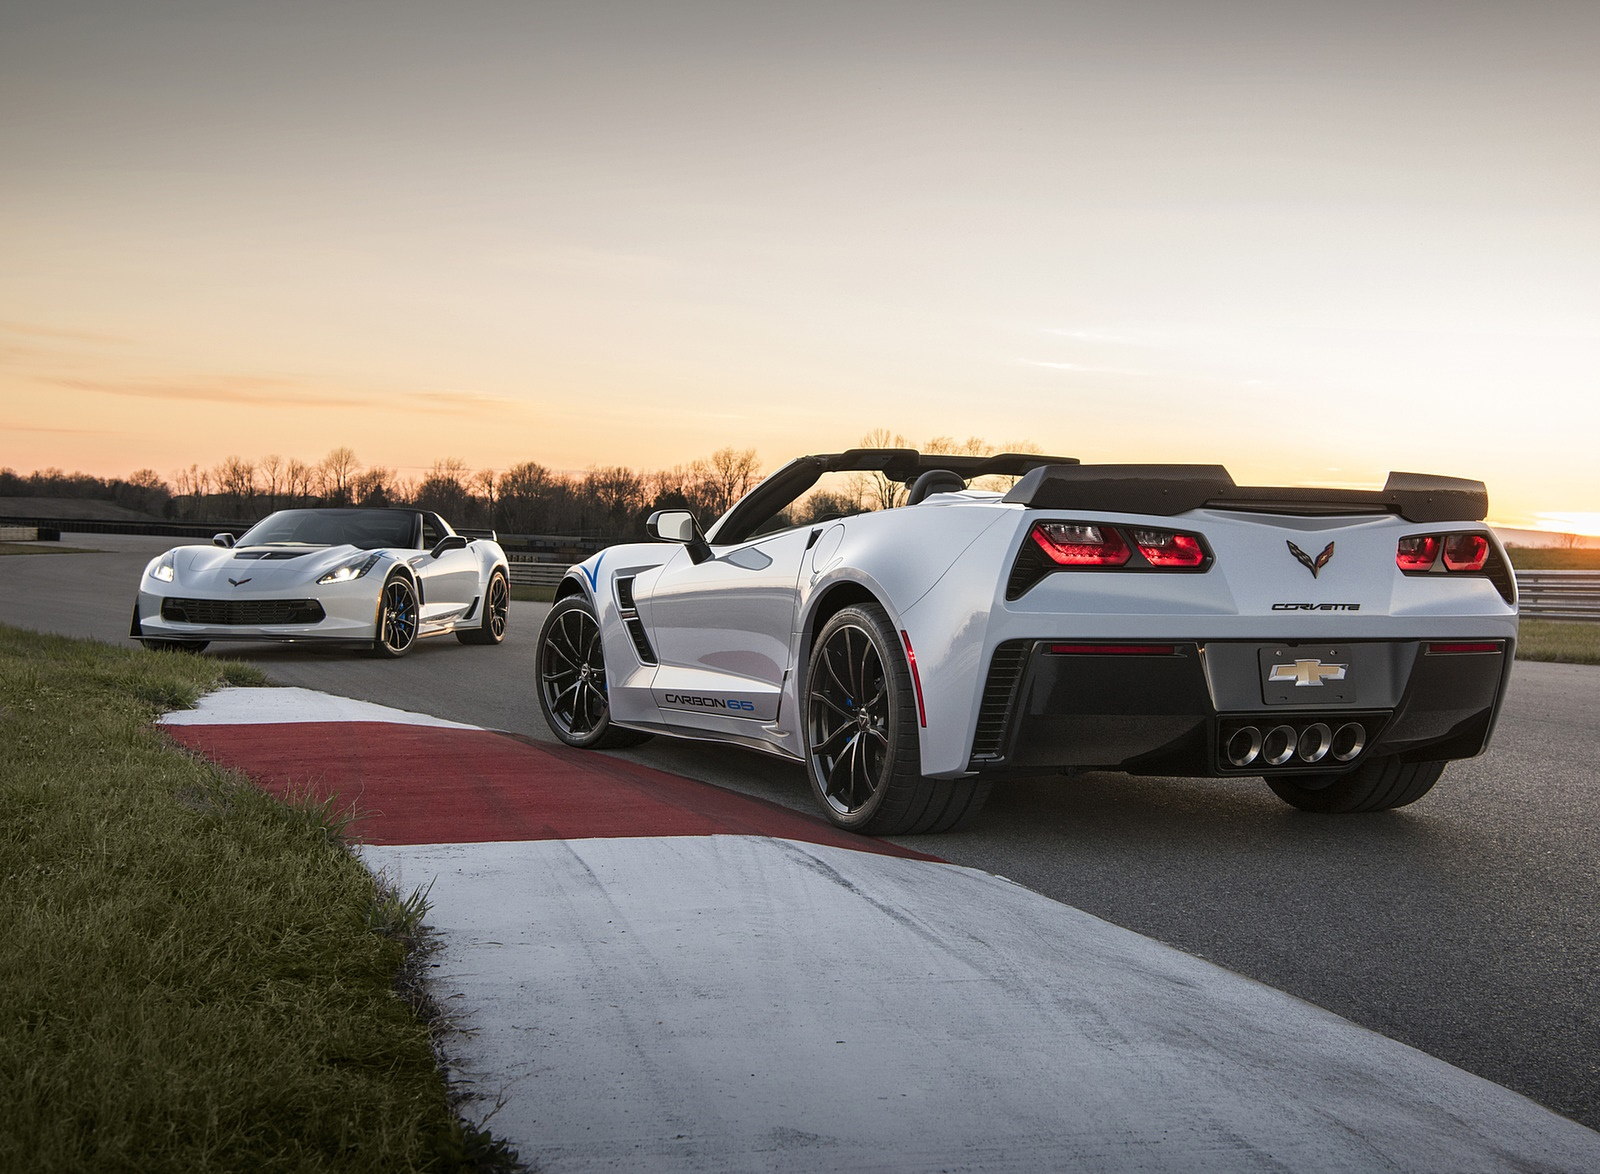 2018 Chevrolet Corvette Carbon 65 Edition Coupe and Convertible Wallpapers (4)